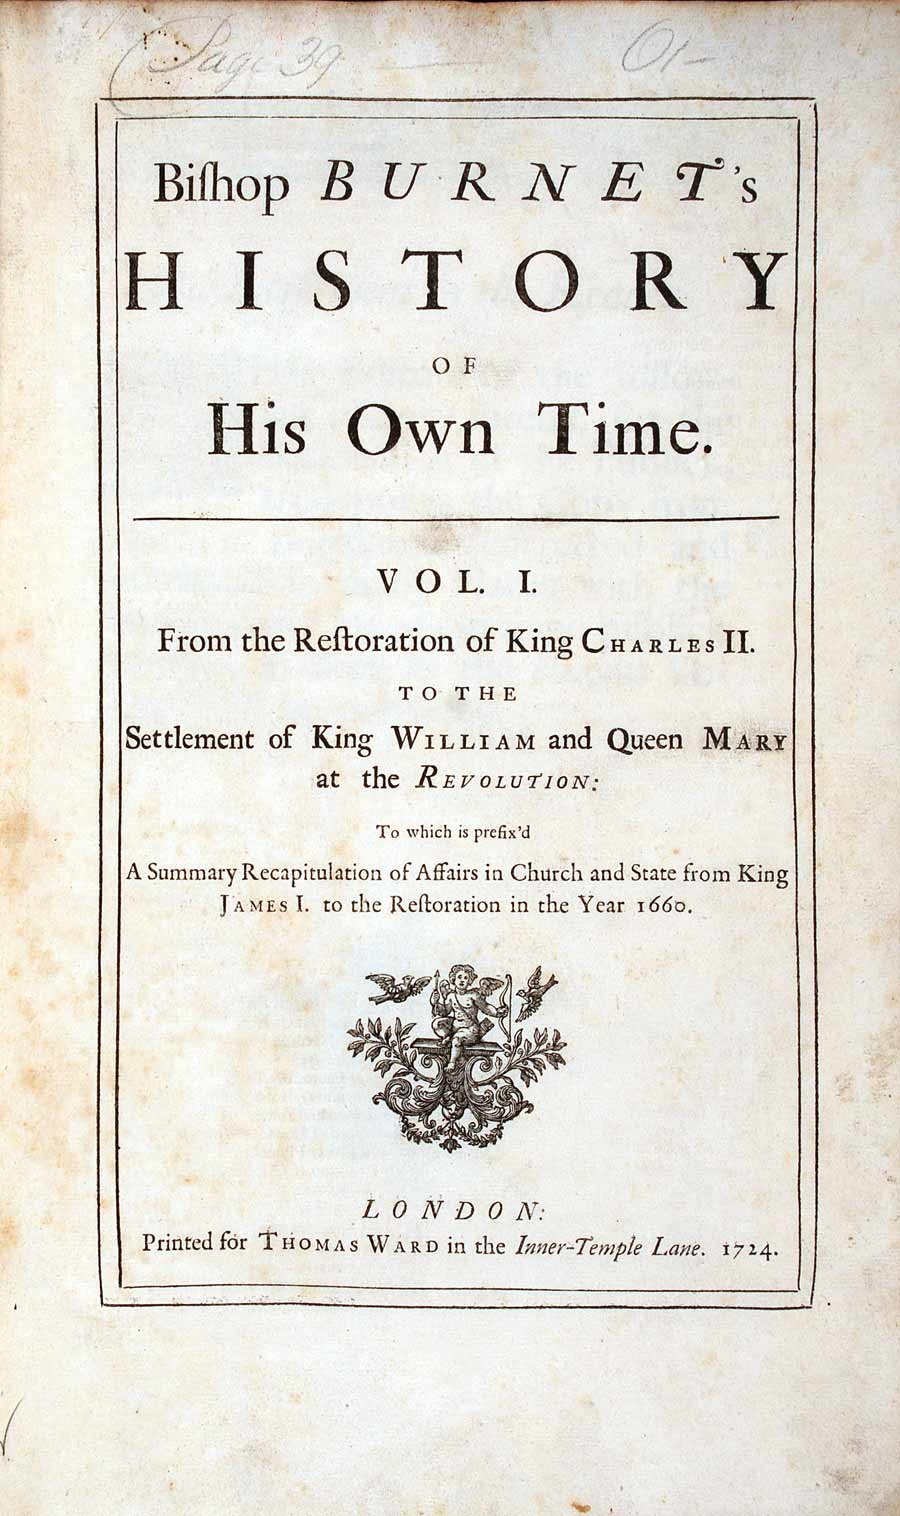 Gilbert Burnet. Bishop Burnet's history of his own time…. 2 vols. London: Printed for Thomas Ward, 1724. Volume one displayed.